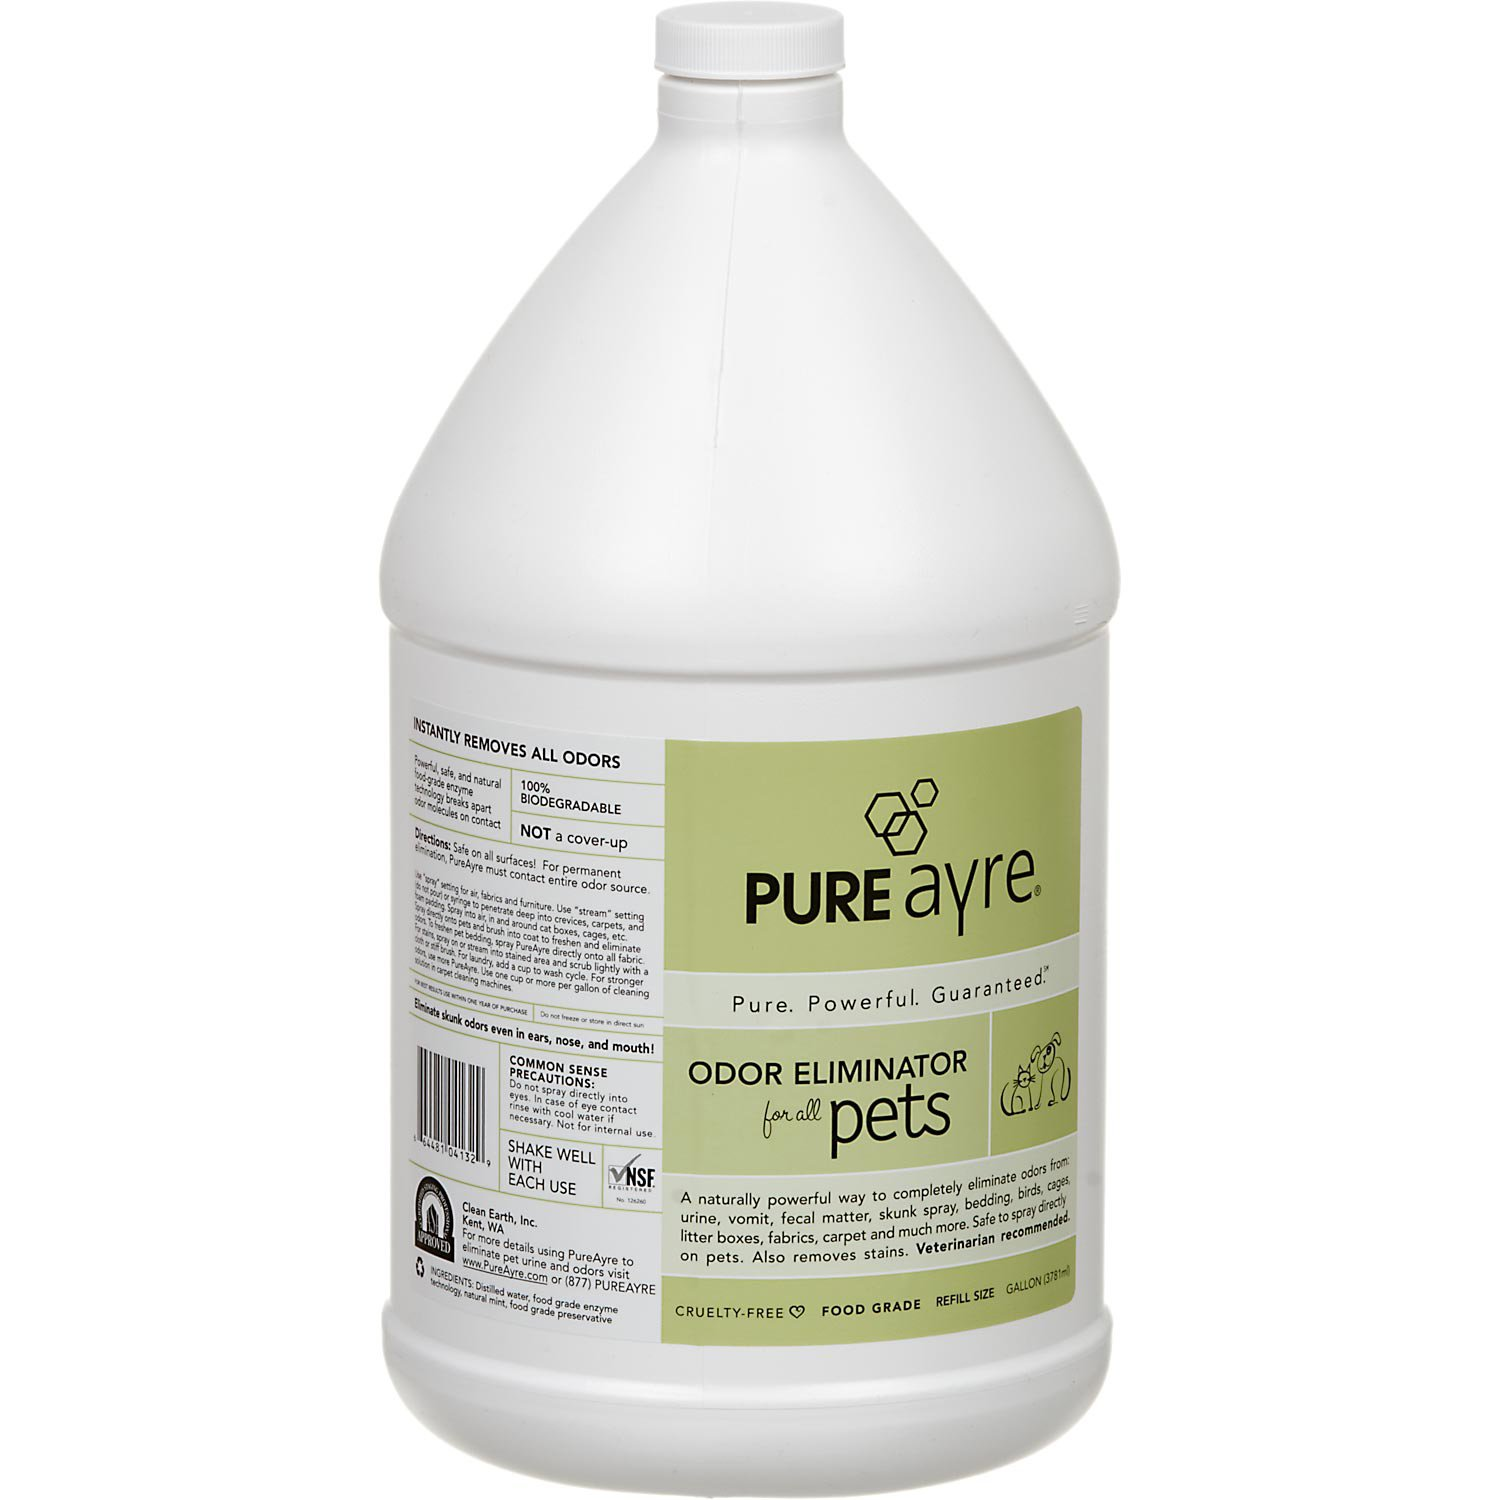 PureAyre Odor Eliminator for Pets